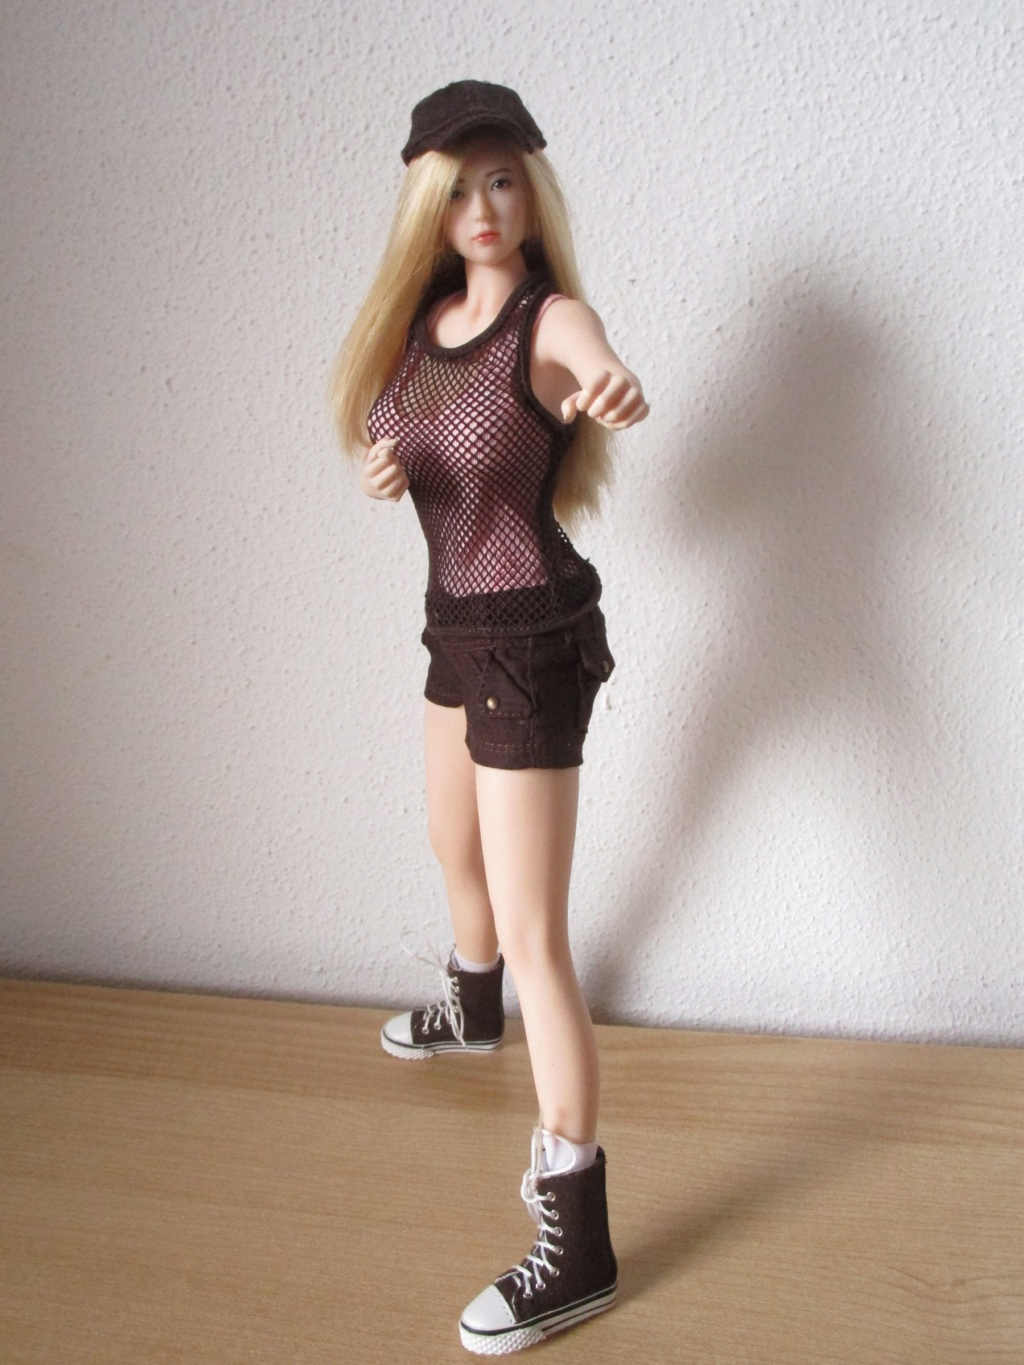 tbleague - NEW PRODUCT: TBLeague: 1/6 Female Super-Flexible Seamless Body S34 & S35 (with head sculpt) & 34A & 34A (without head sculpt) - Page 4 Img_4410